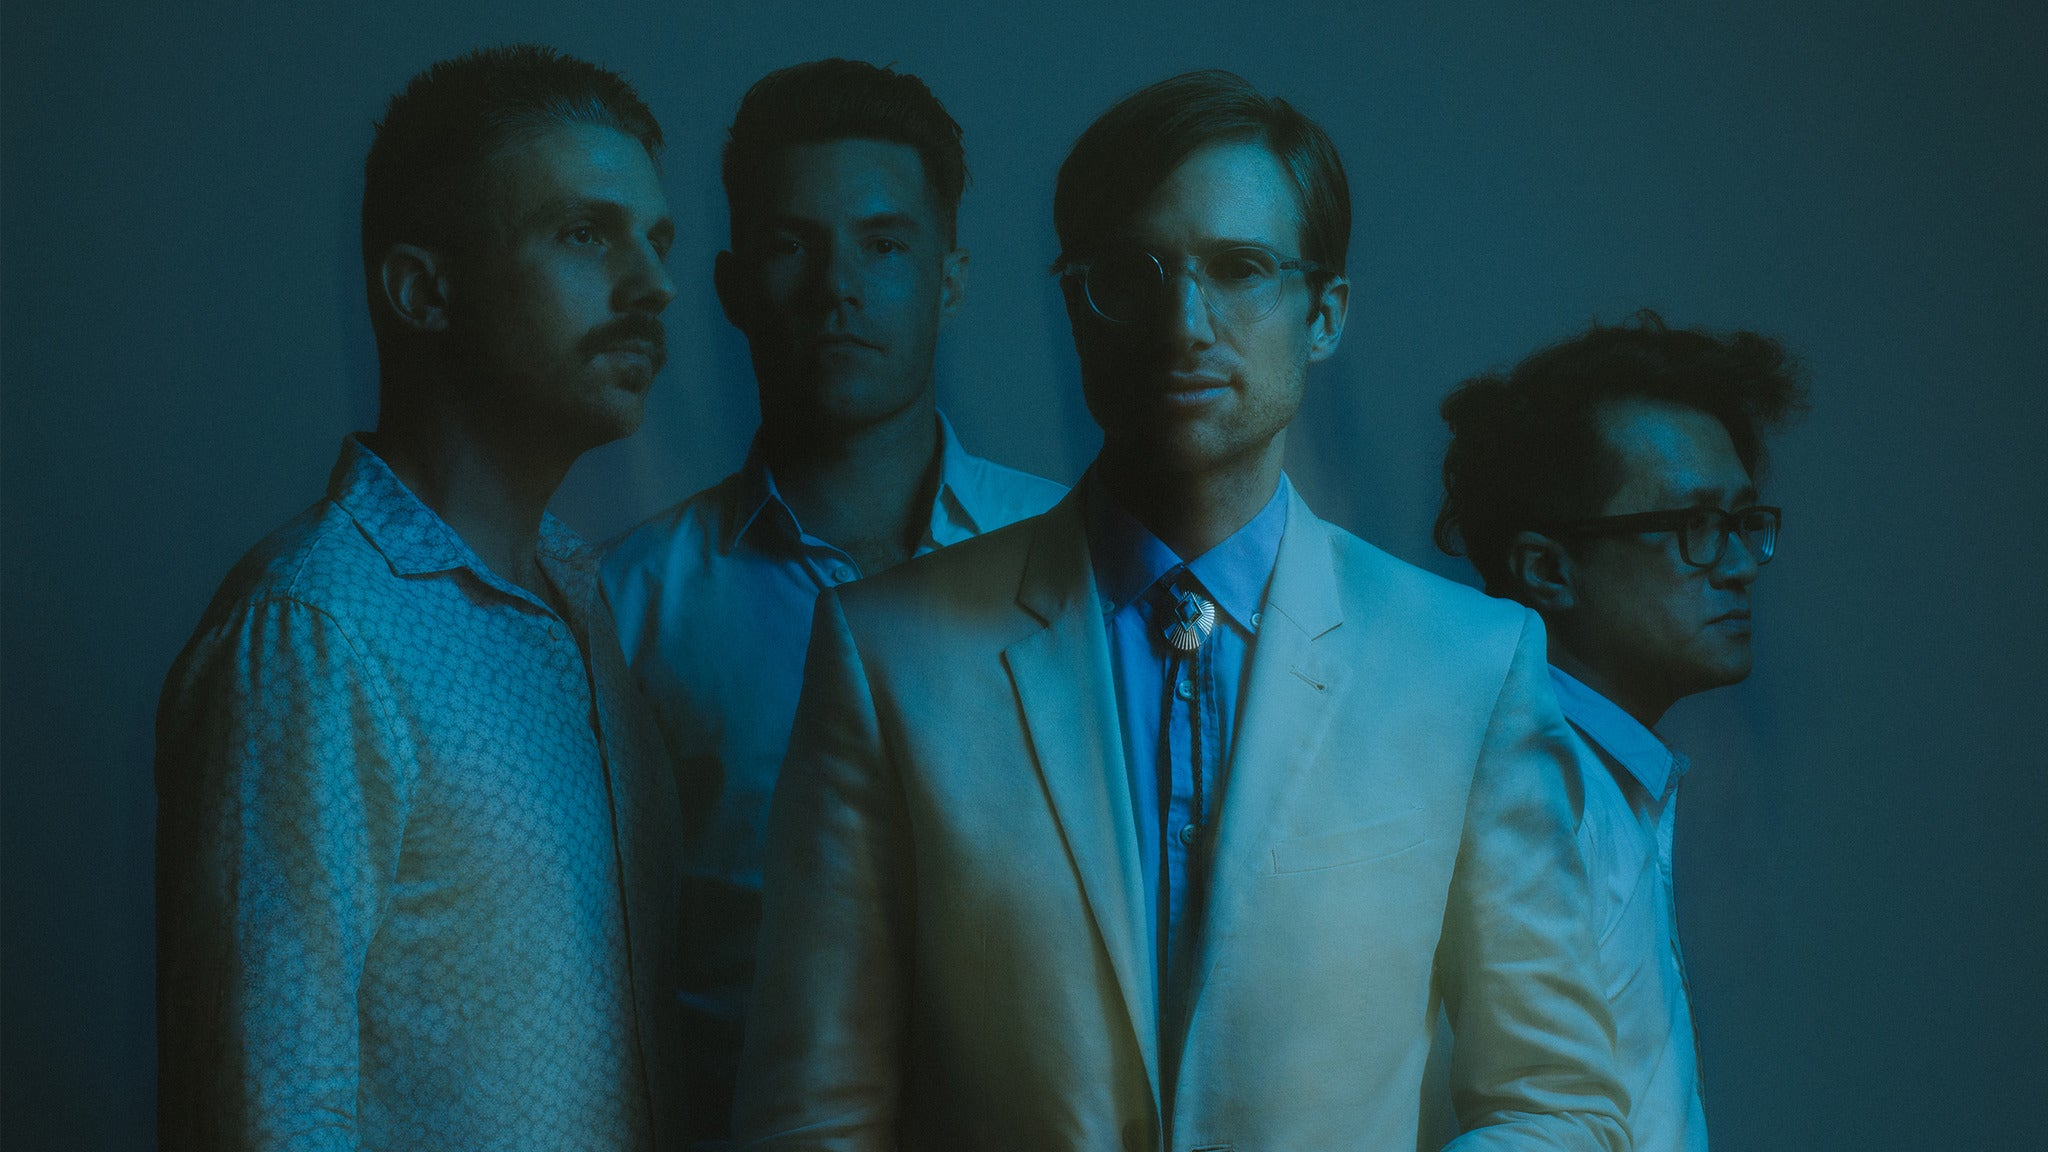 Saint Motel presented by Harrisburg University at XL Live